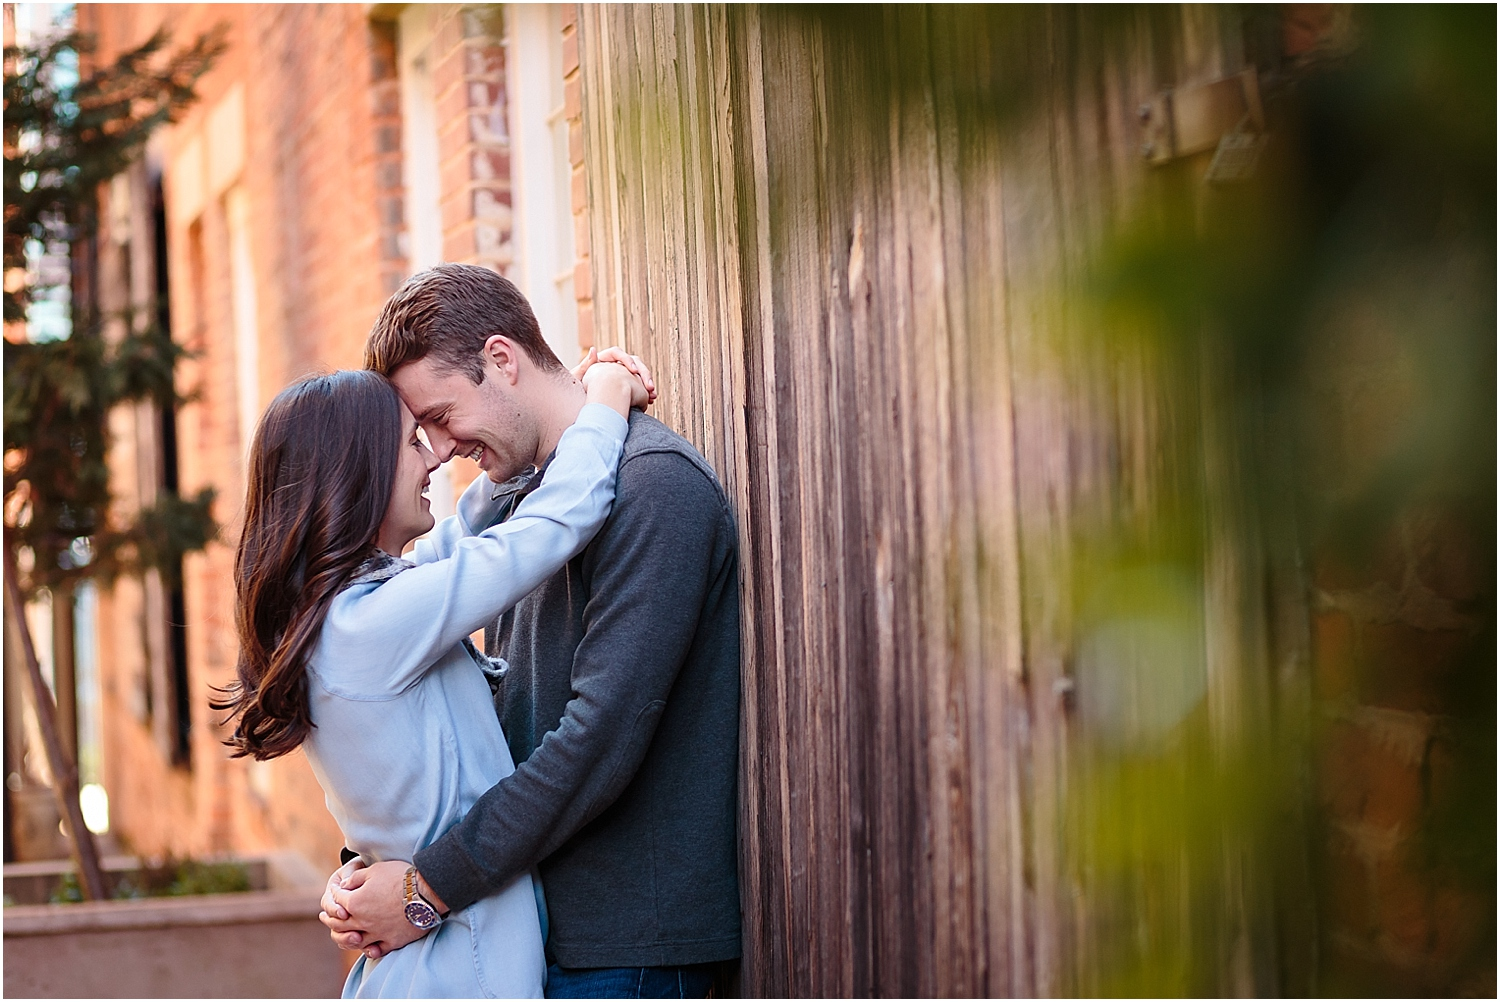 141128--8271Downtown-Greenville-engagement_blog.jpg